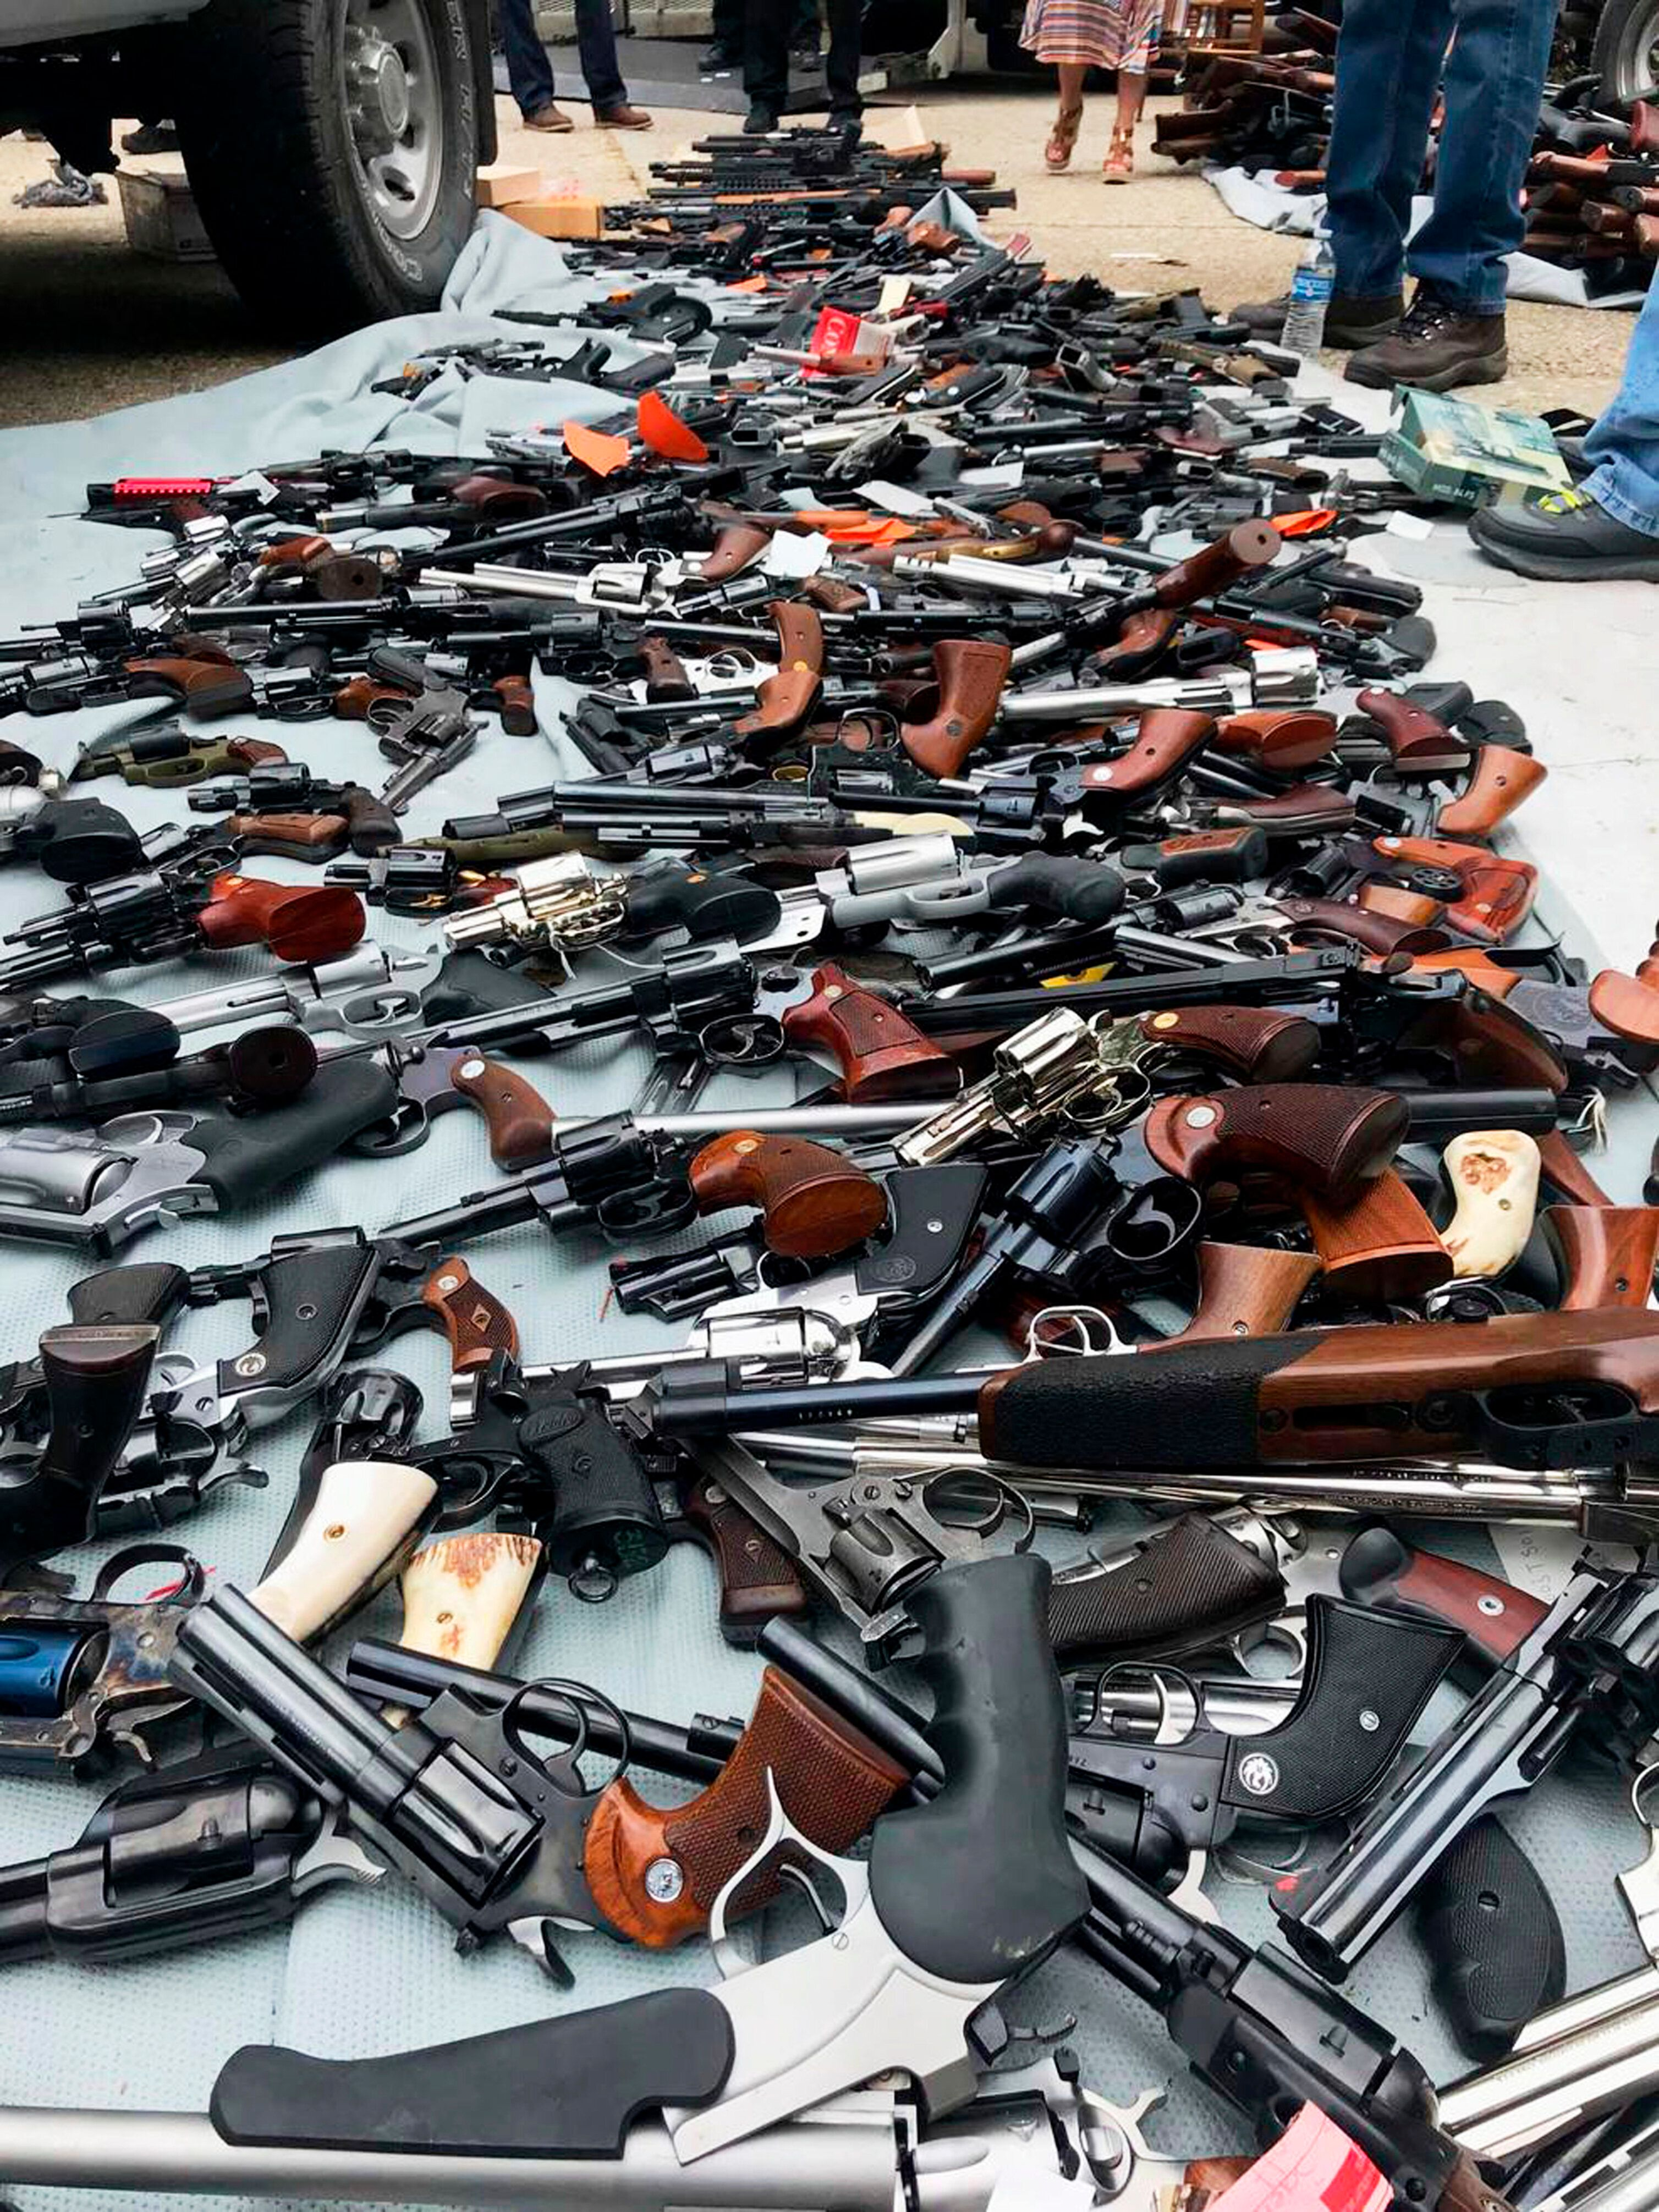 Authorities seized more than a thousand guns from the Holmby Hills home after getting an anonymous tip regarding illegal fire